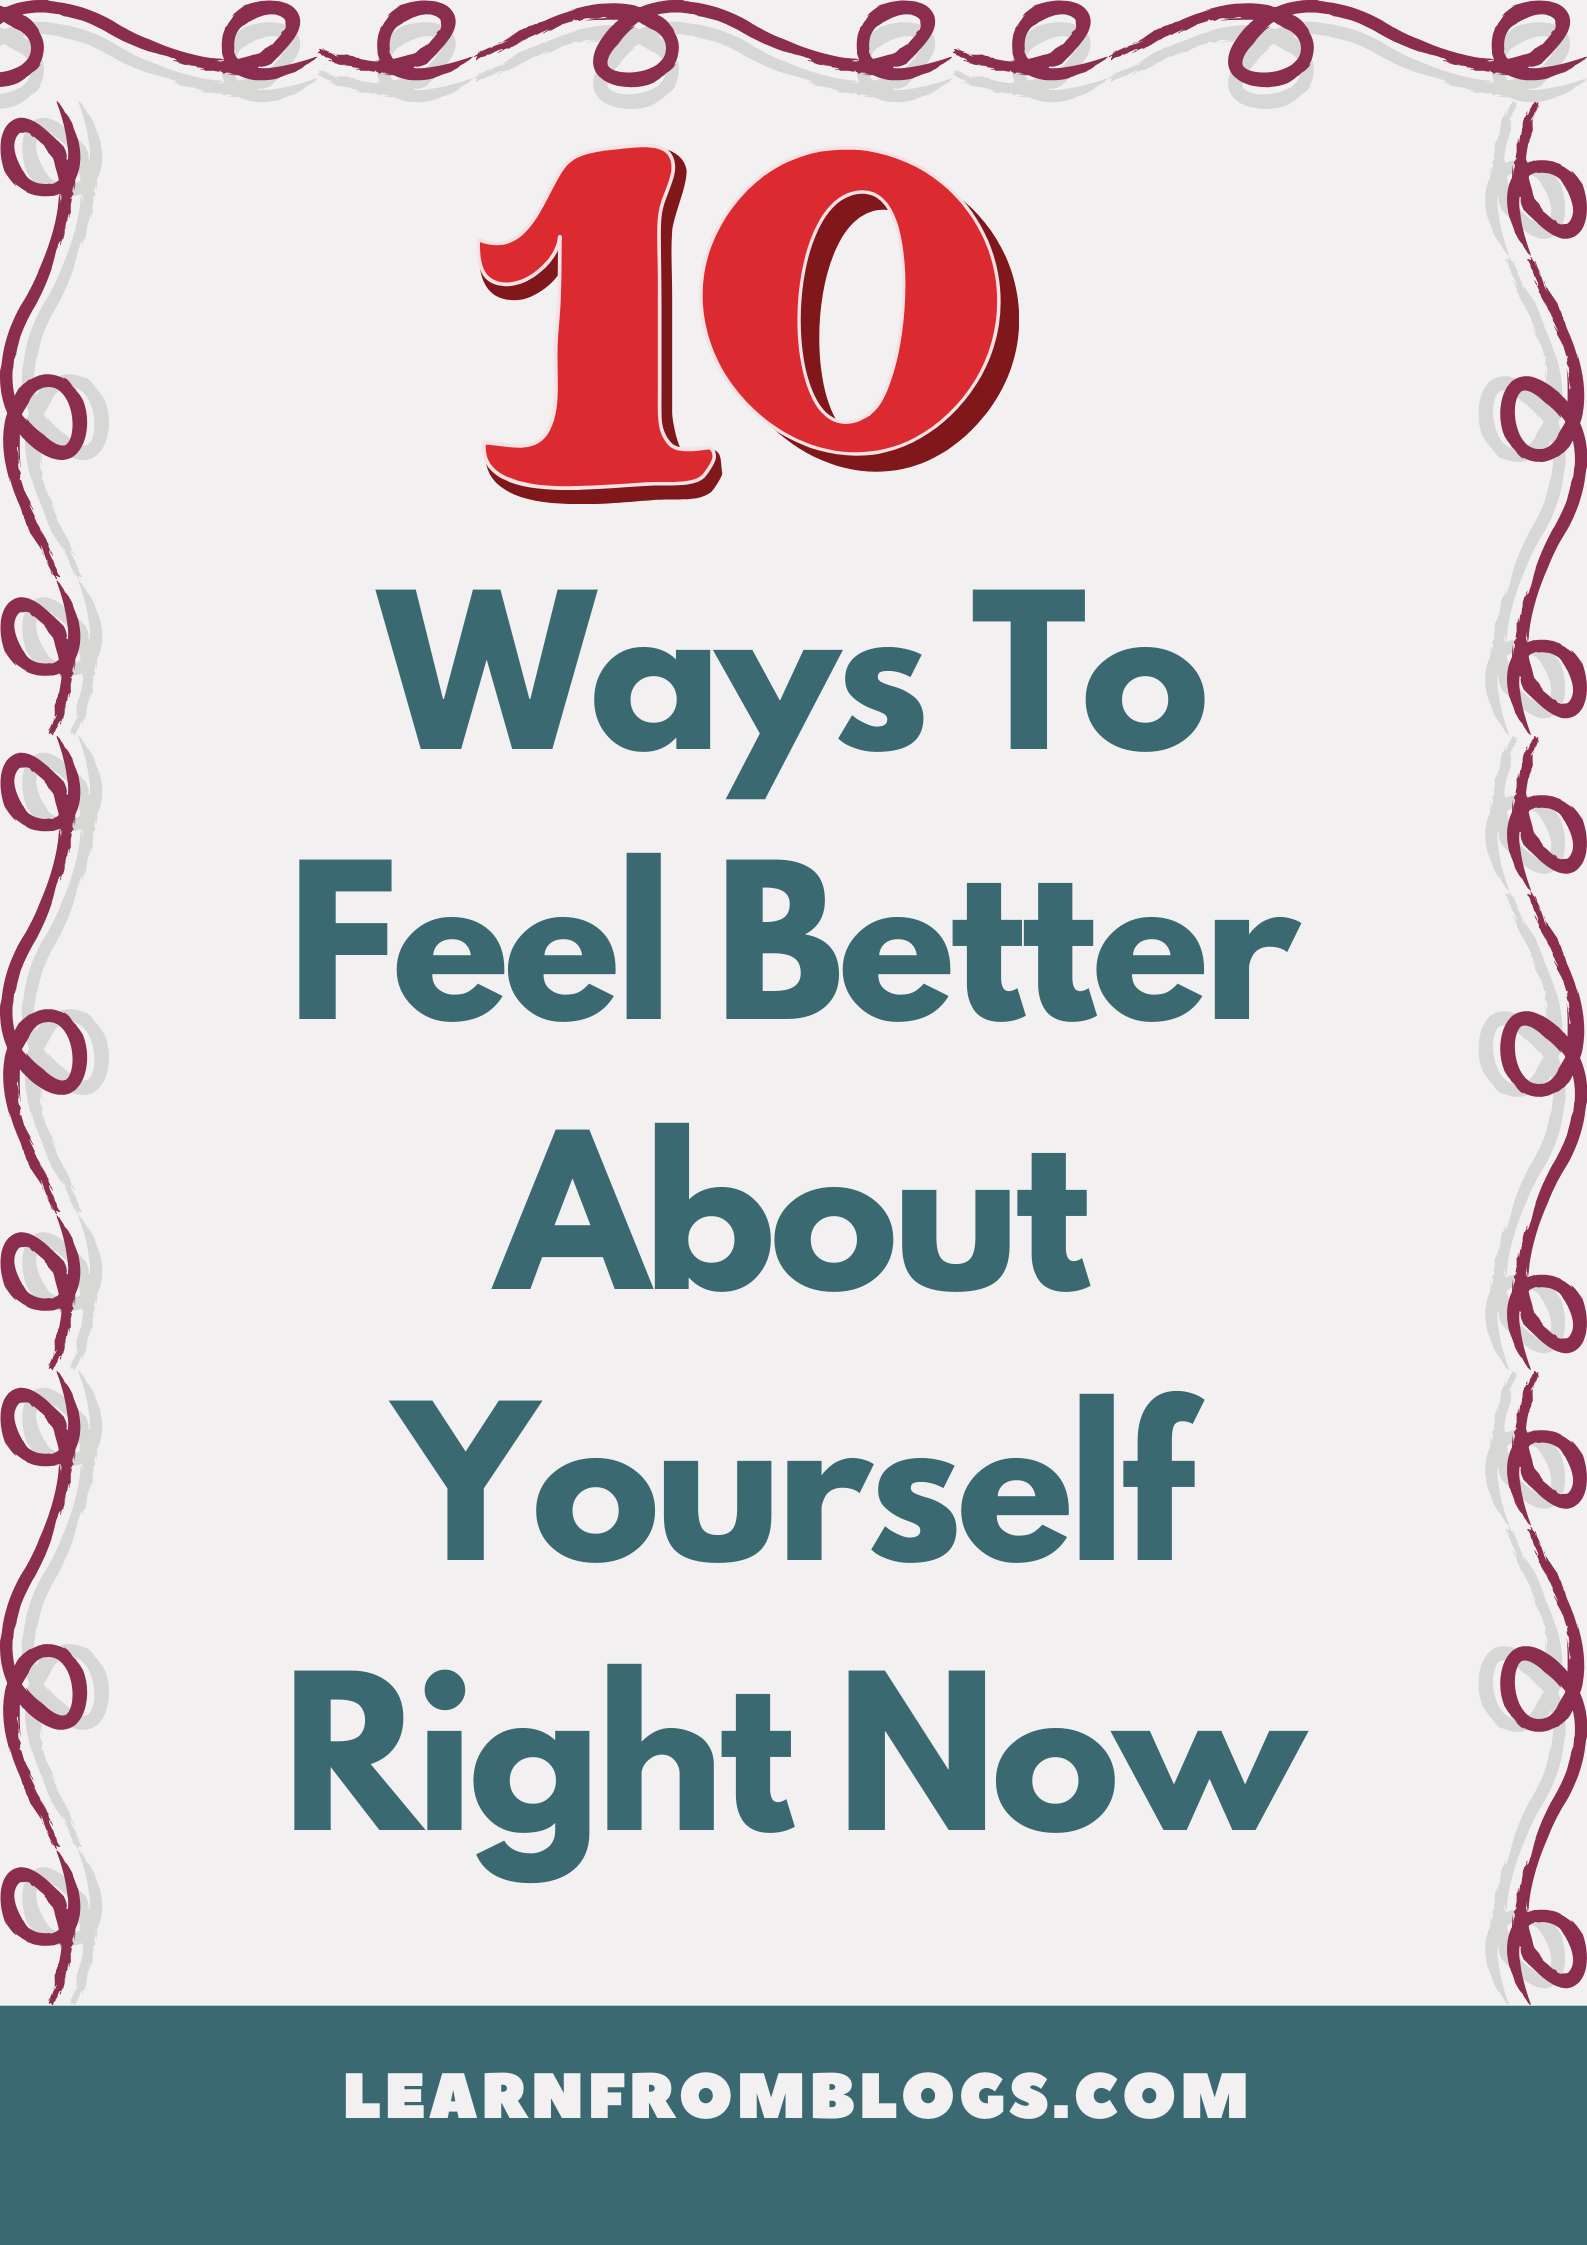 10 ways to feel better about yourself right now.png